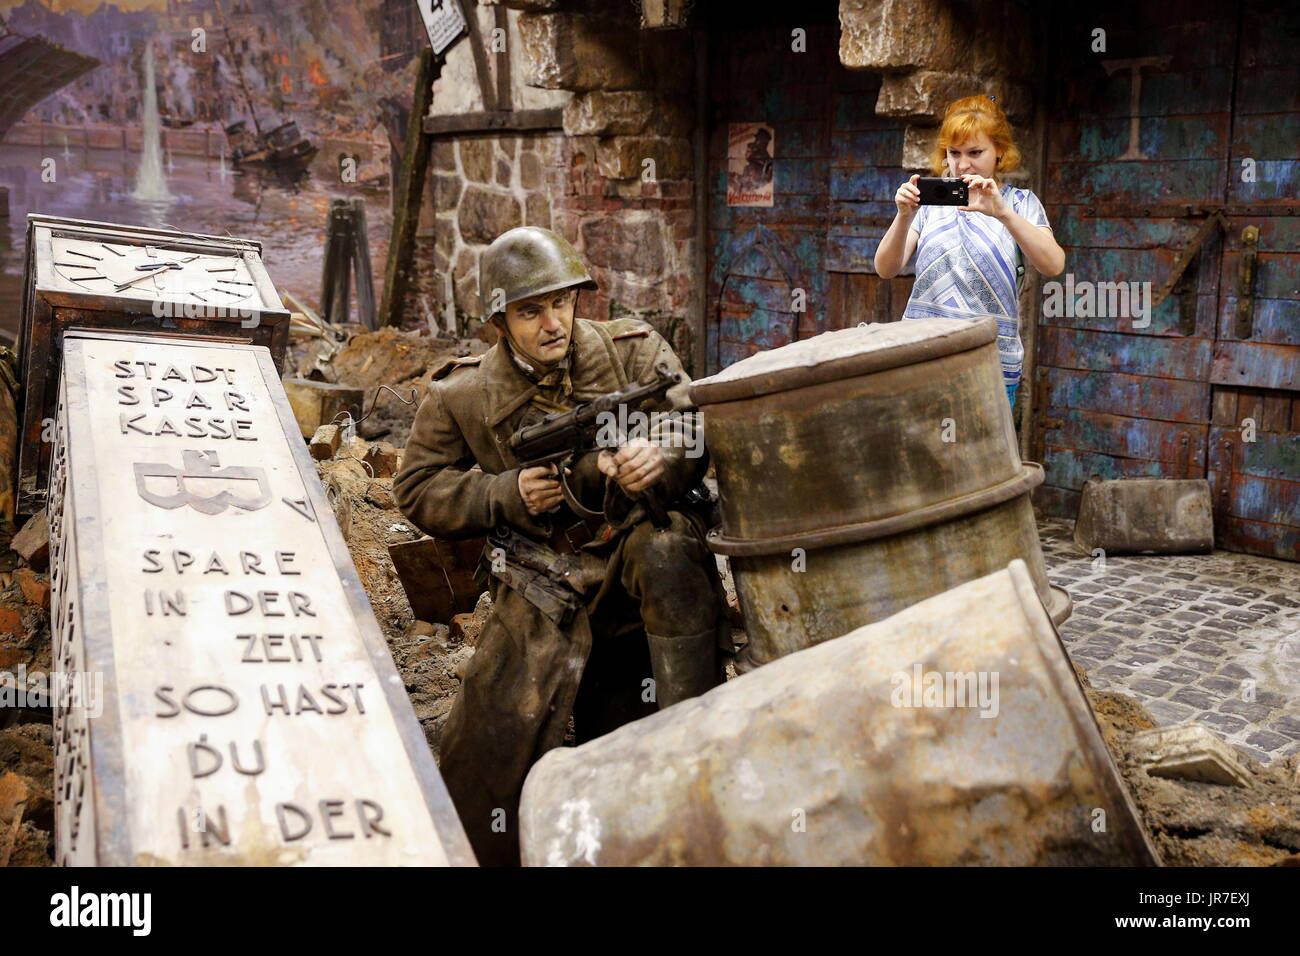 Kaliningrad Region, Russia. 3rd Aug, 2017. A visitor views a 3-dimensional panoramic exhibition titled 'Konigsberg 1945: the Final Assault' at the Kaliningrad Region Museum of History and Arts; the 360-degree display, which depicts the April 1945 assault by the Red Army on the city of Konigsberg in WWII, is an artwork by the Nevsky Batalist team led by Dmitry Poshtarenko. Credit: Vitaly Nevar/TASS/Alamy Live News - Stock Image